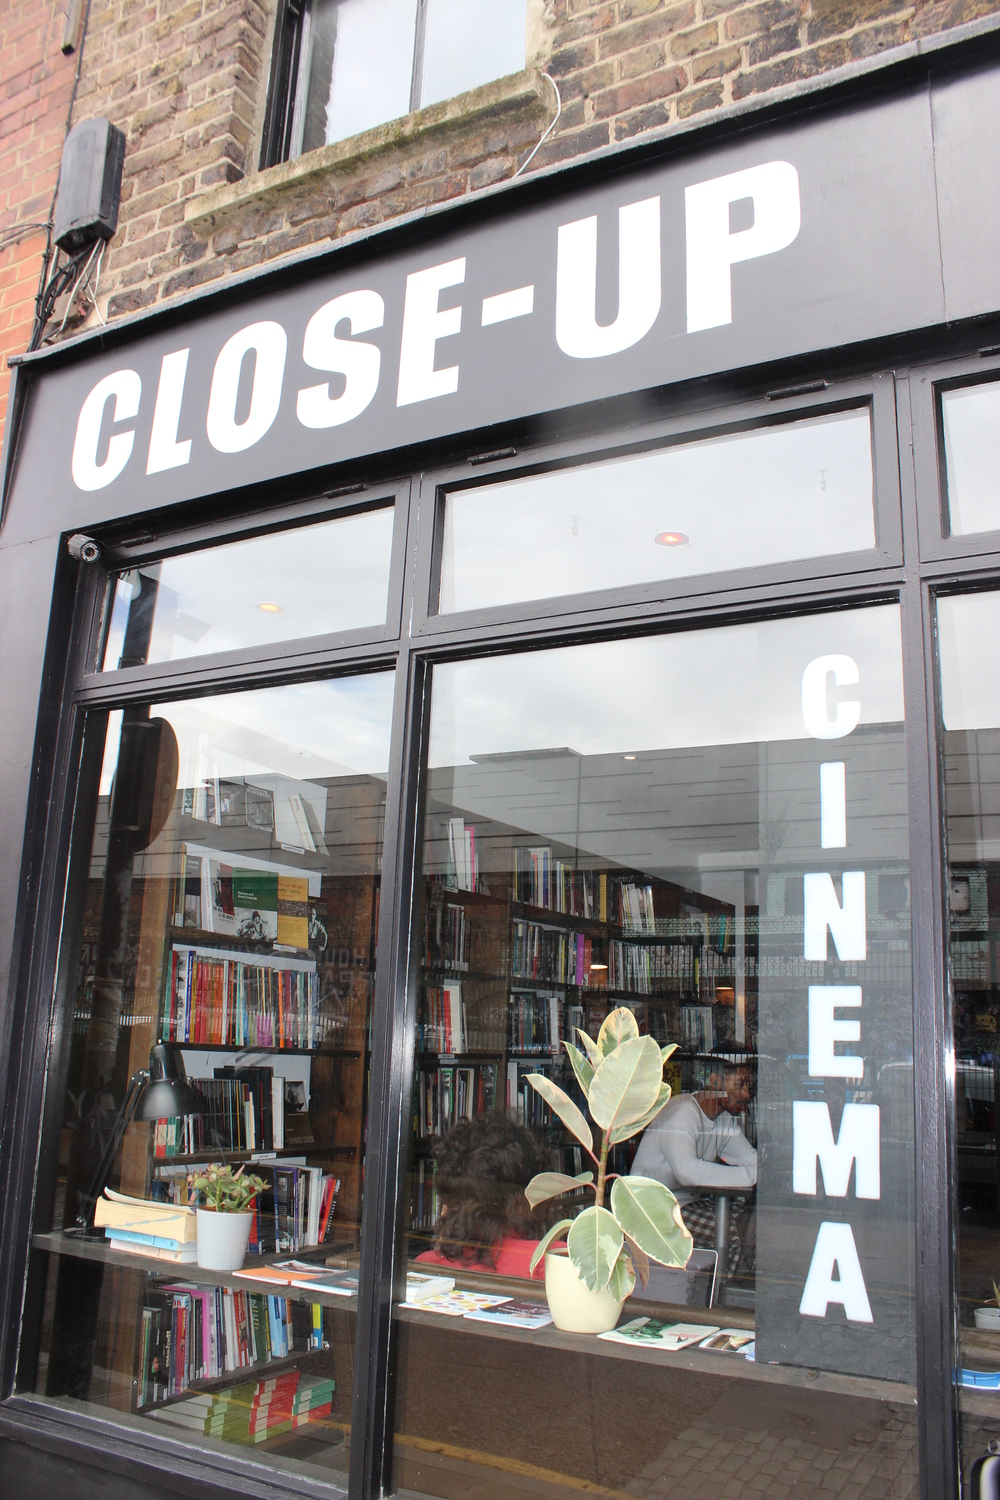 One of the wonderful businesses we supply too, they also happen to be an extremely very cool independent cinema.